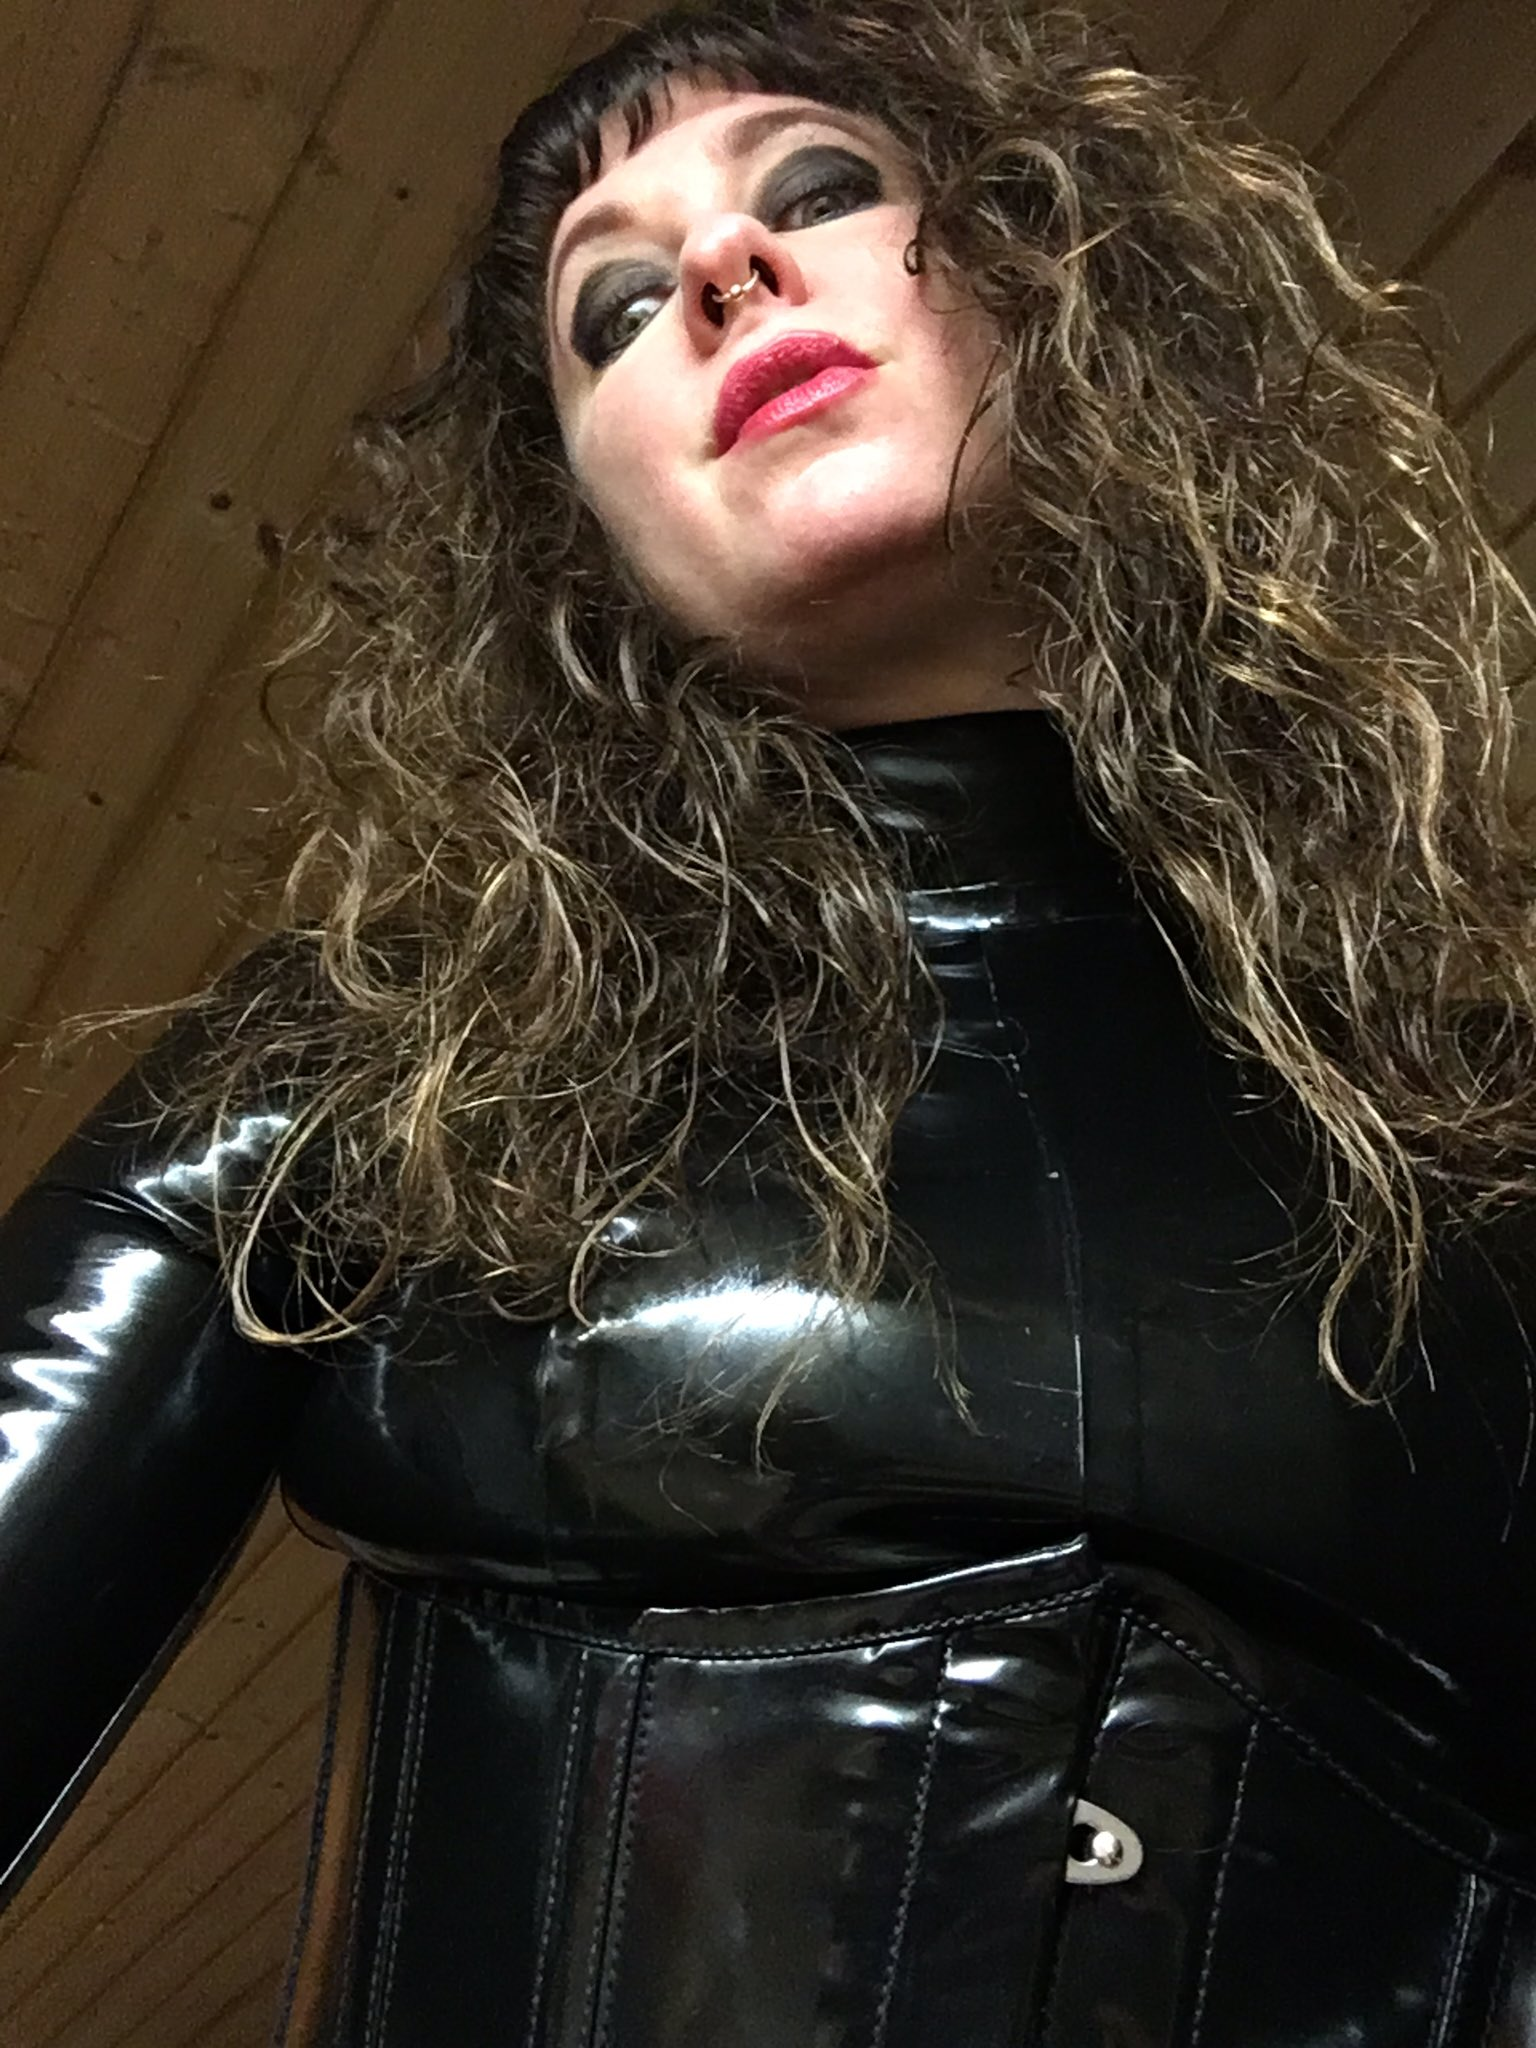 Anna Rose on Twitter: Pic taken right now 💕 ! #latex #